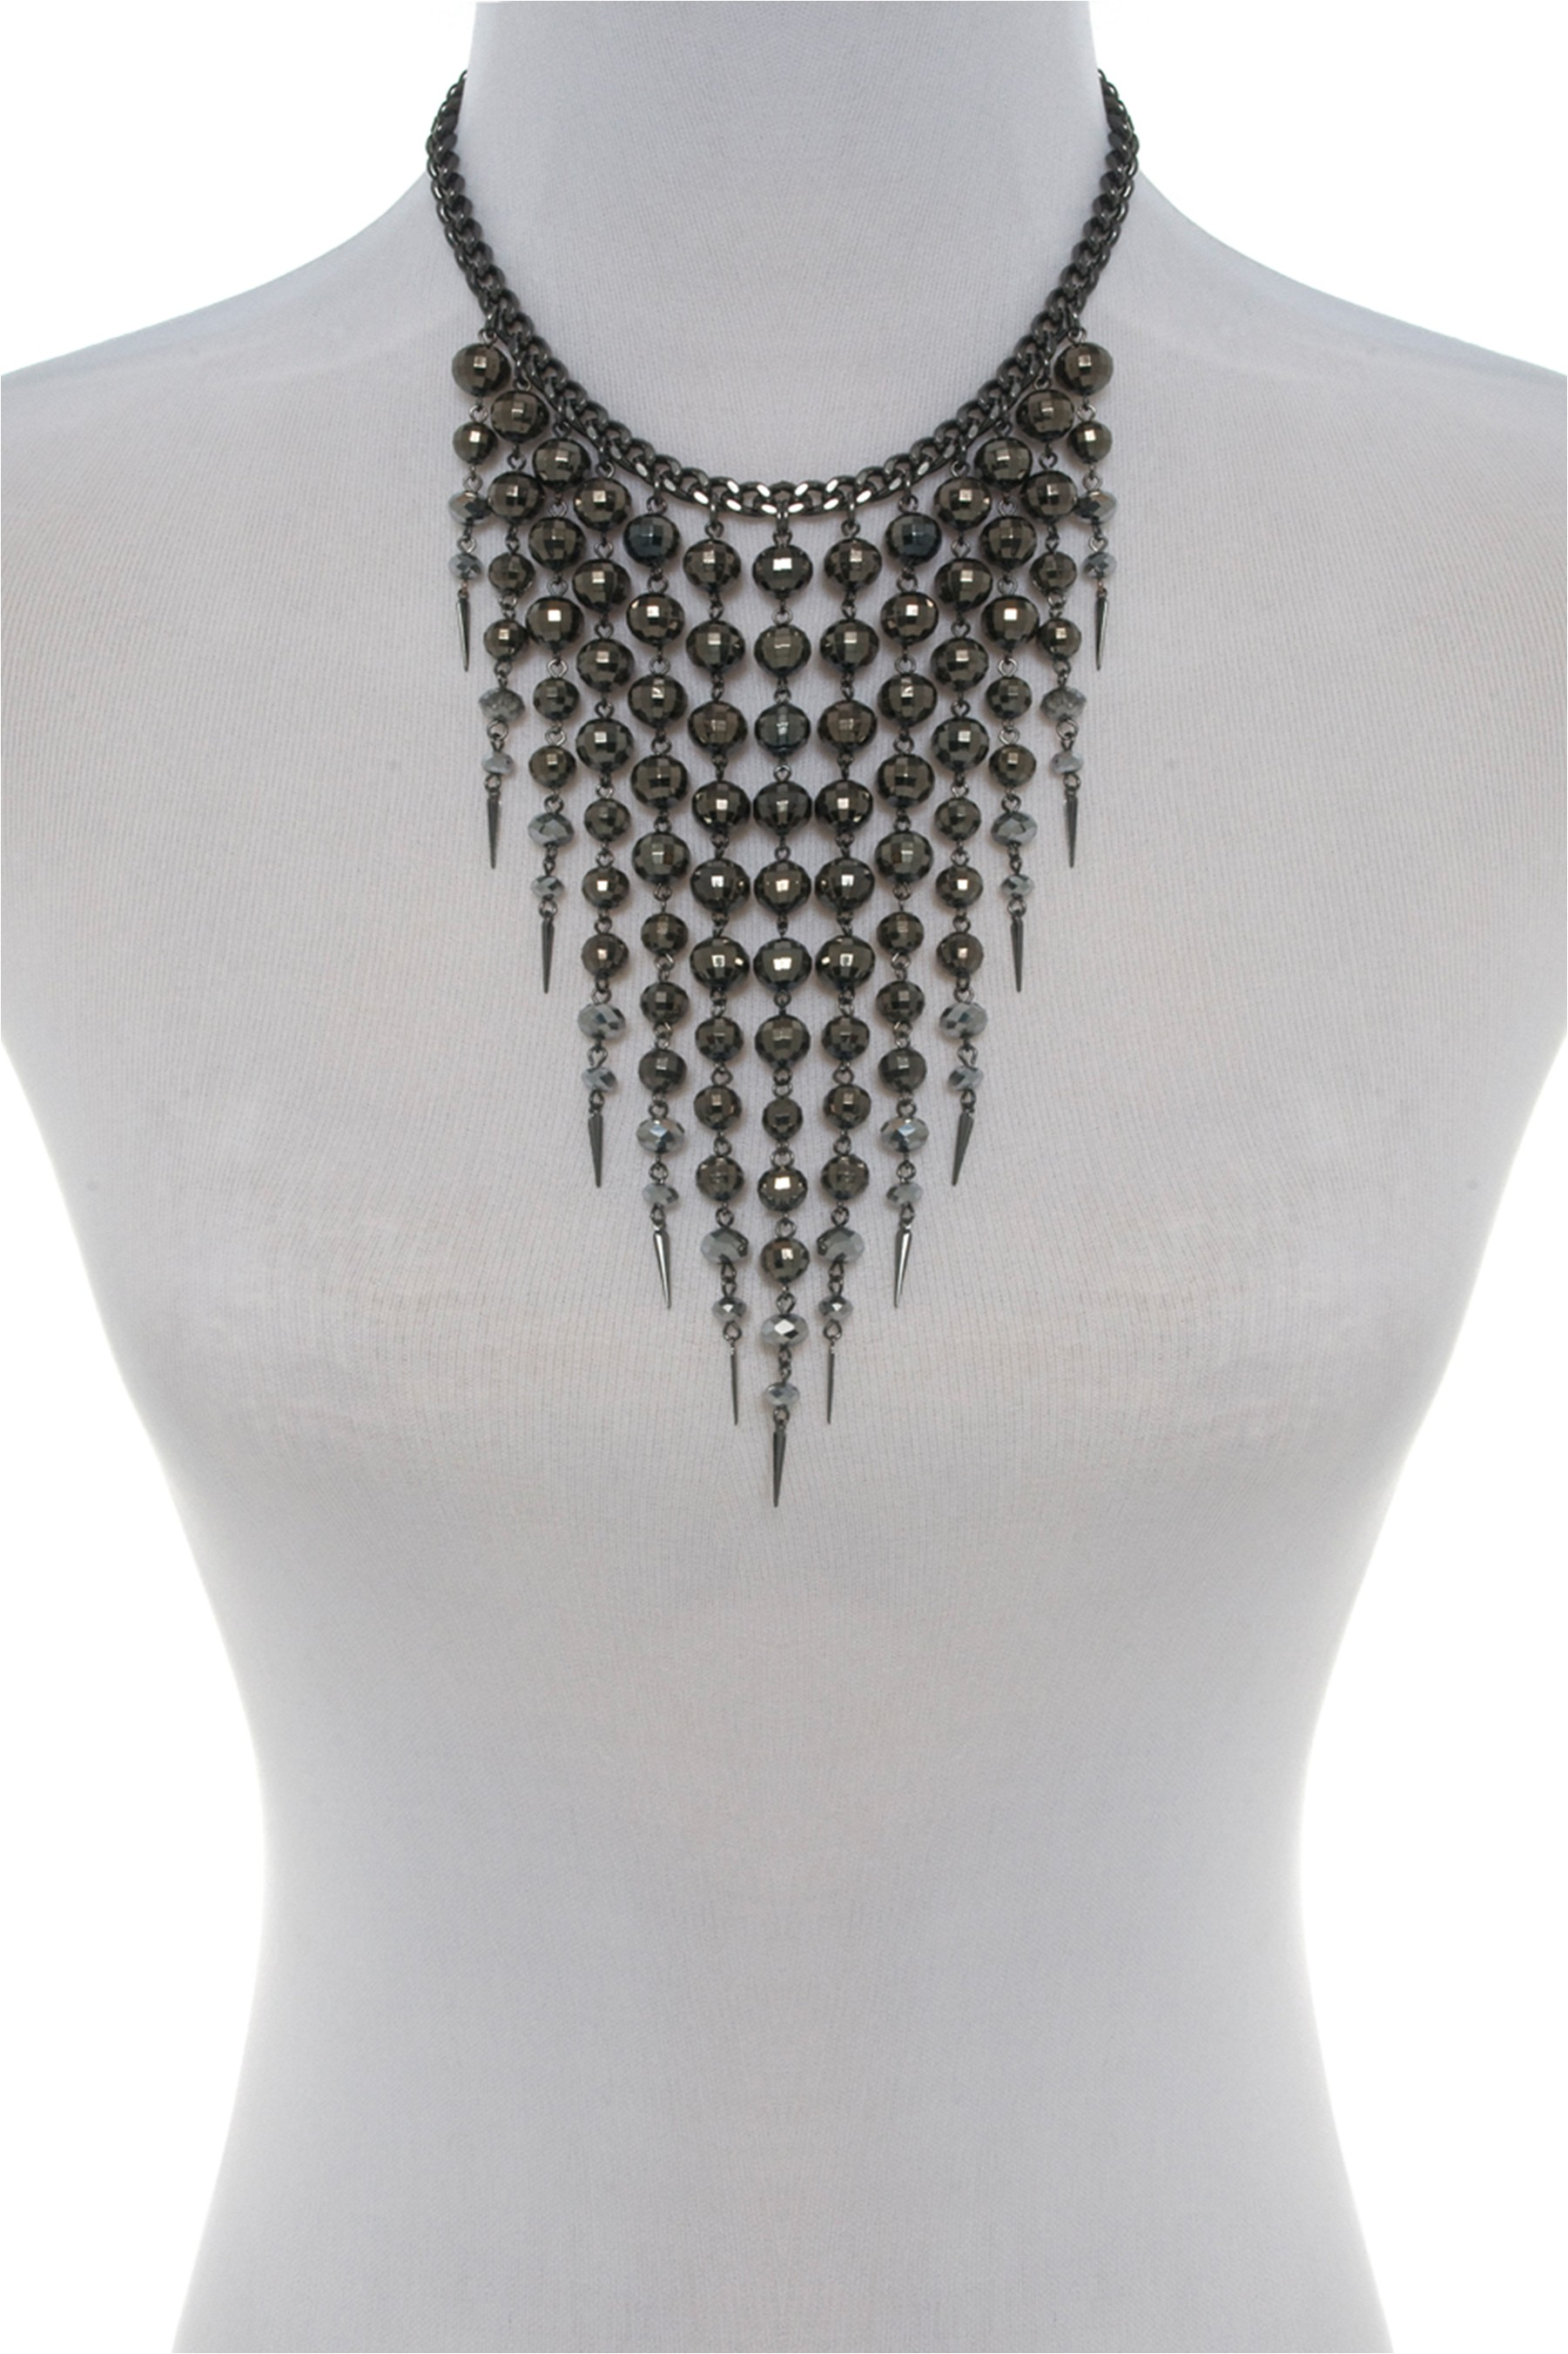 bib lace nkc athena gunmetal singh jewelry alt product image black necklace amrita shop